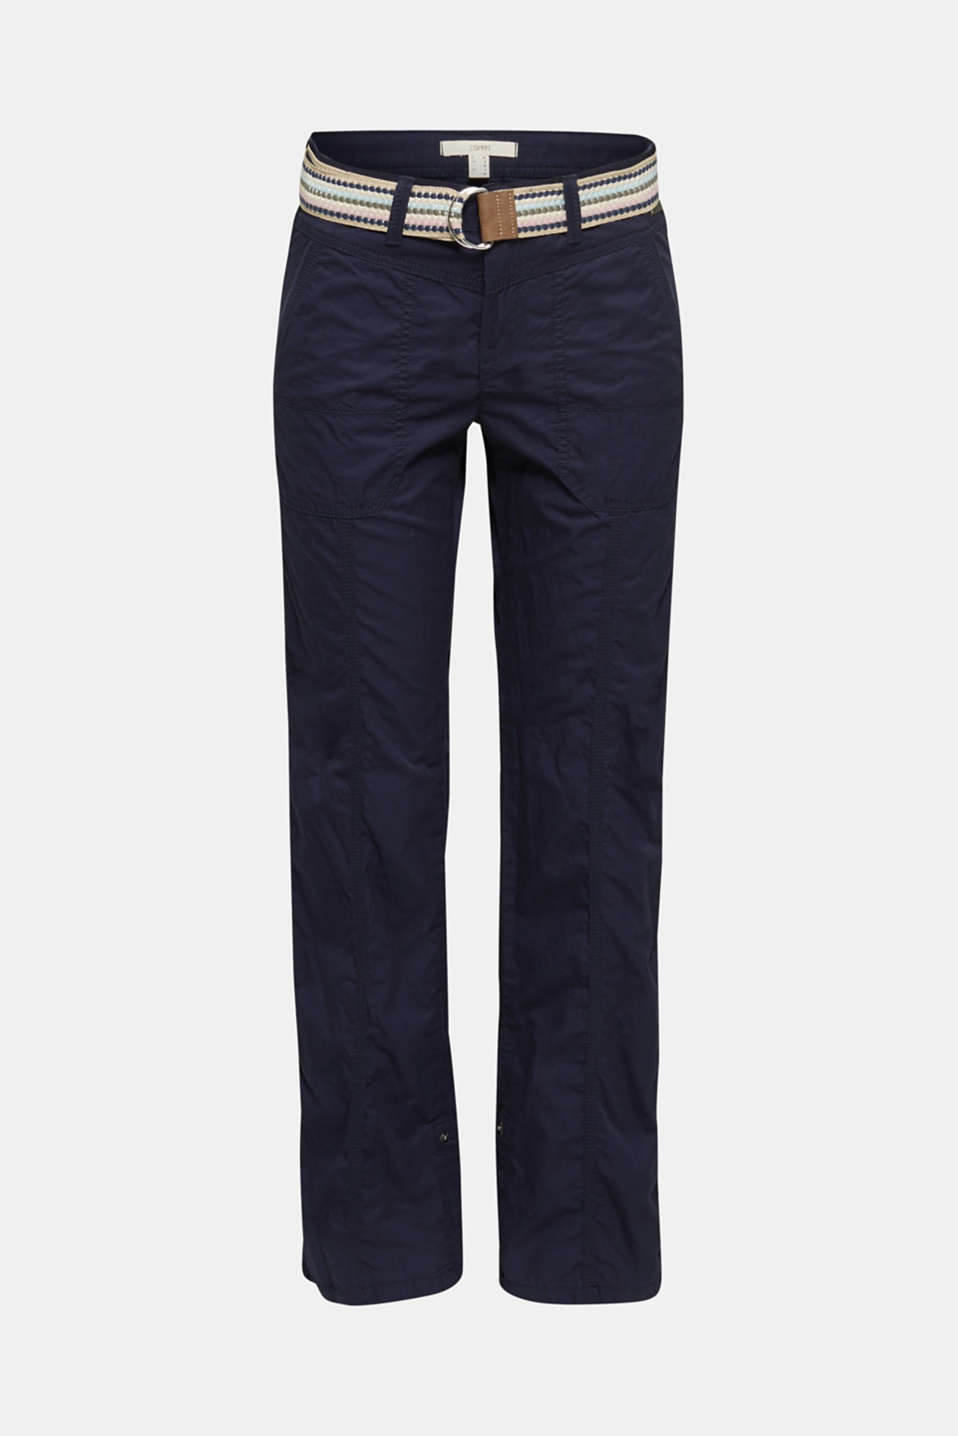 PLAY trousers with belt, 100% organic cotton, NAVY, detail image number 7